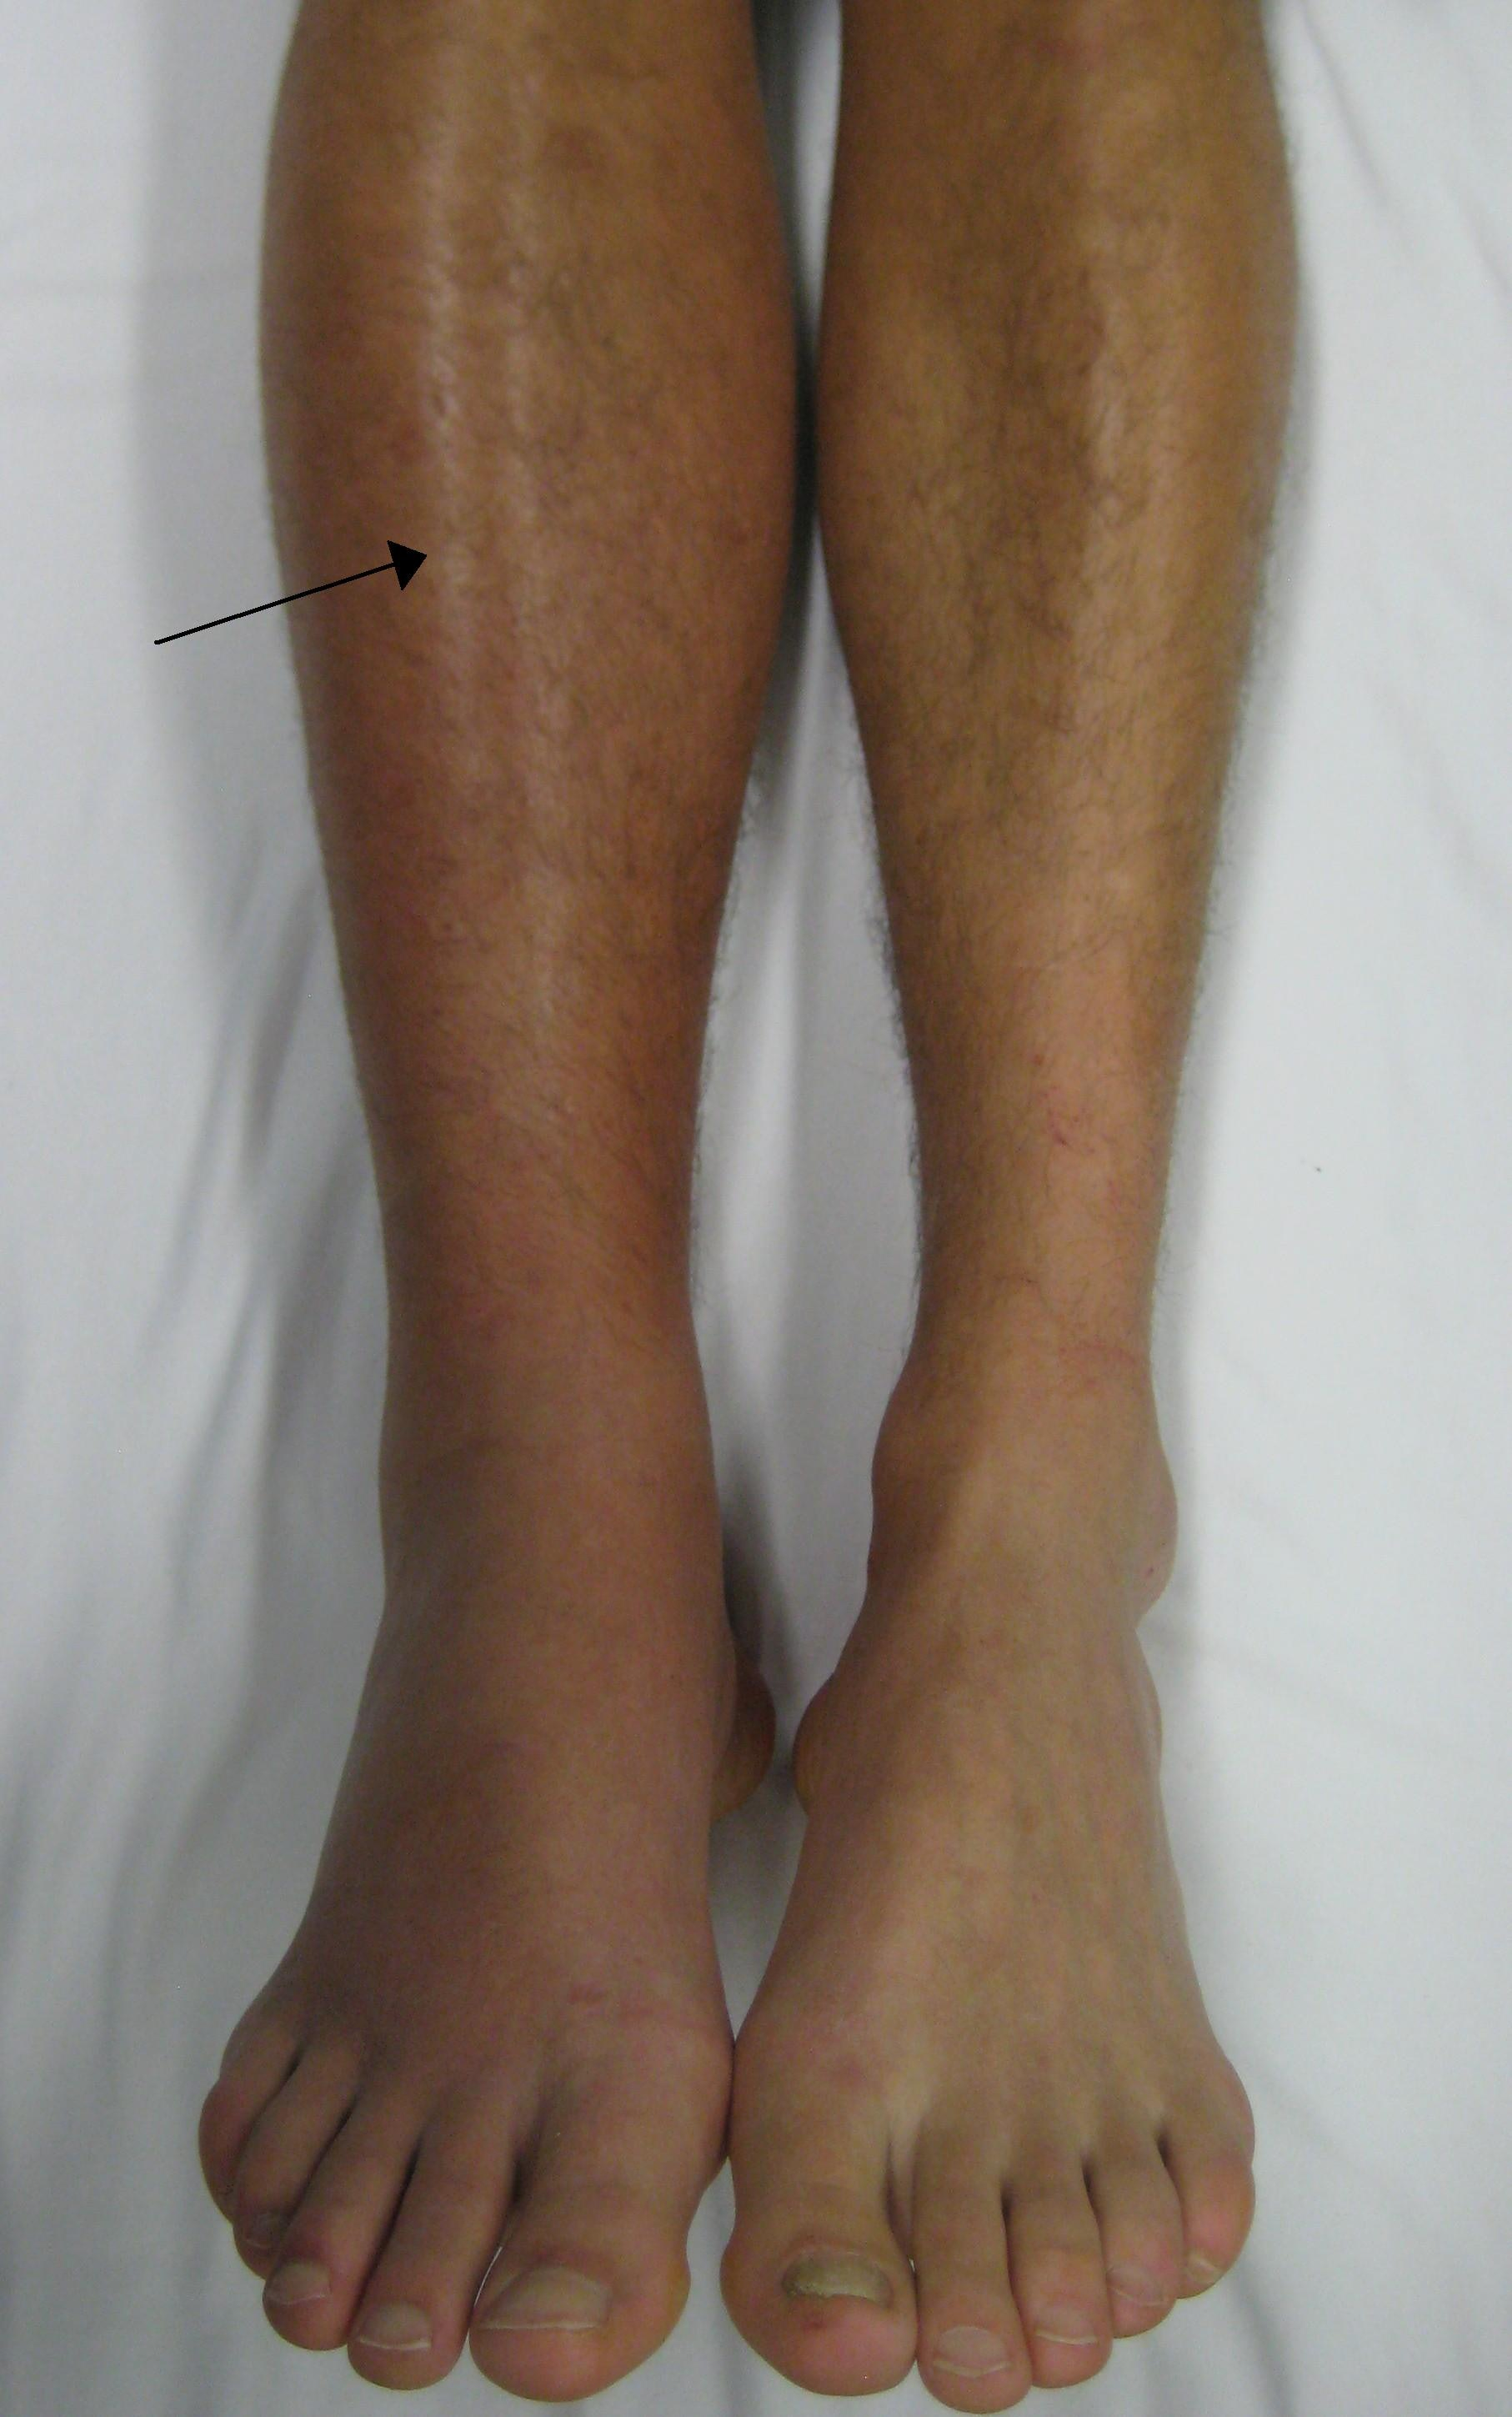 A deep vein thrombosis as seen in the right leg is a risk factor for pulmonary embolism